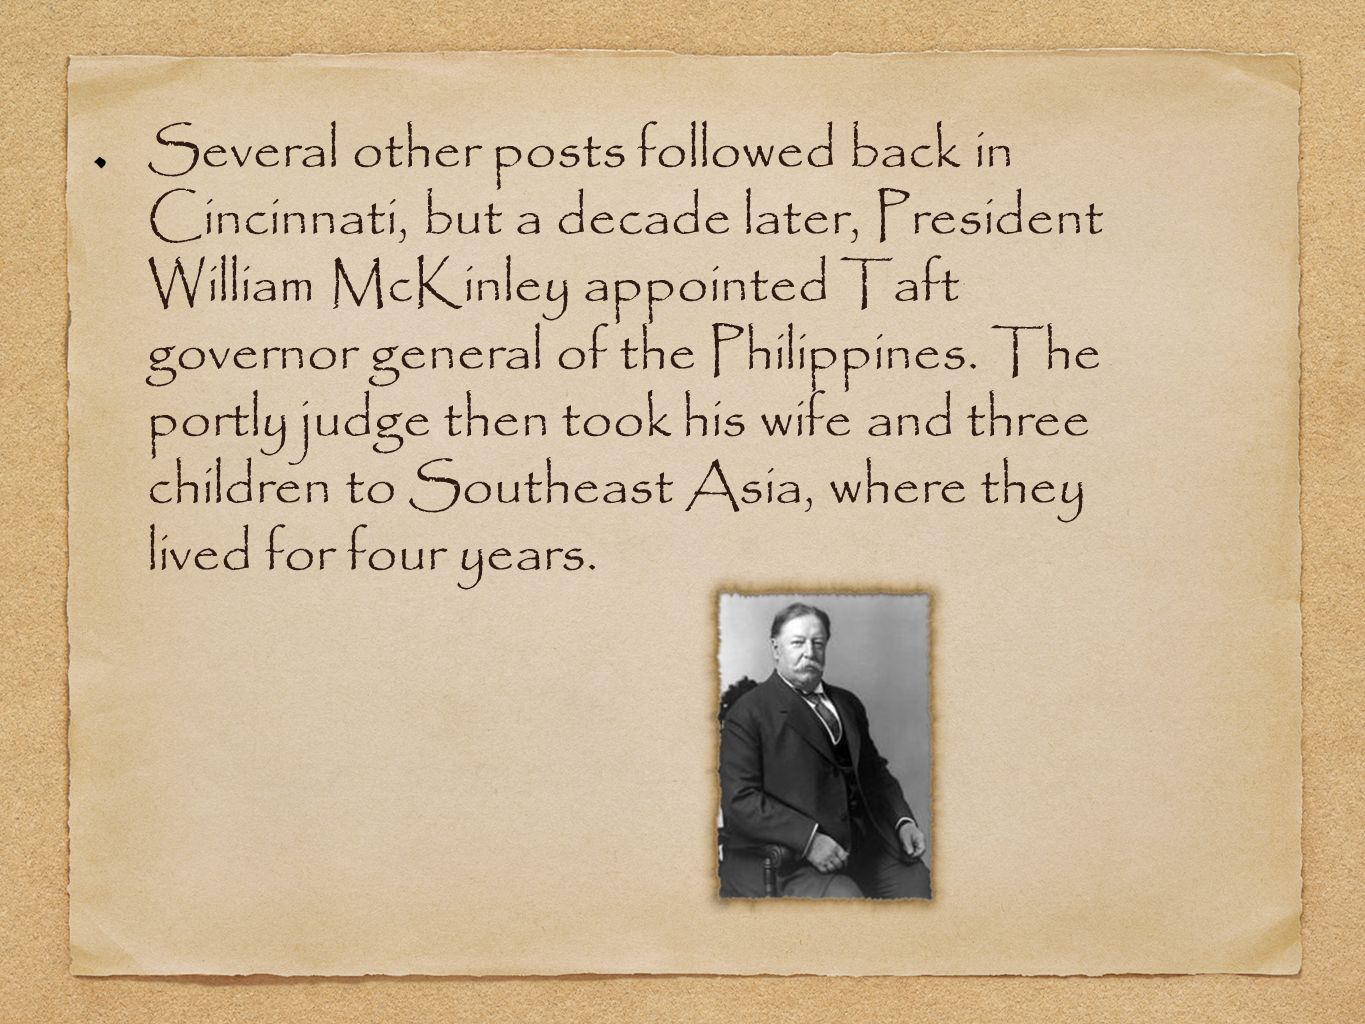 Several other posts followed back in Cincinnati, but a decade later, President William McKinley appointed Taft governor general of the Philippines.